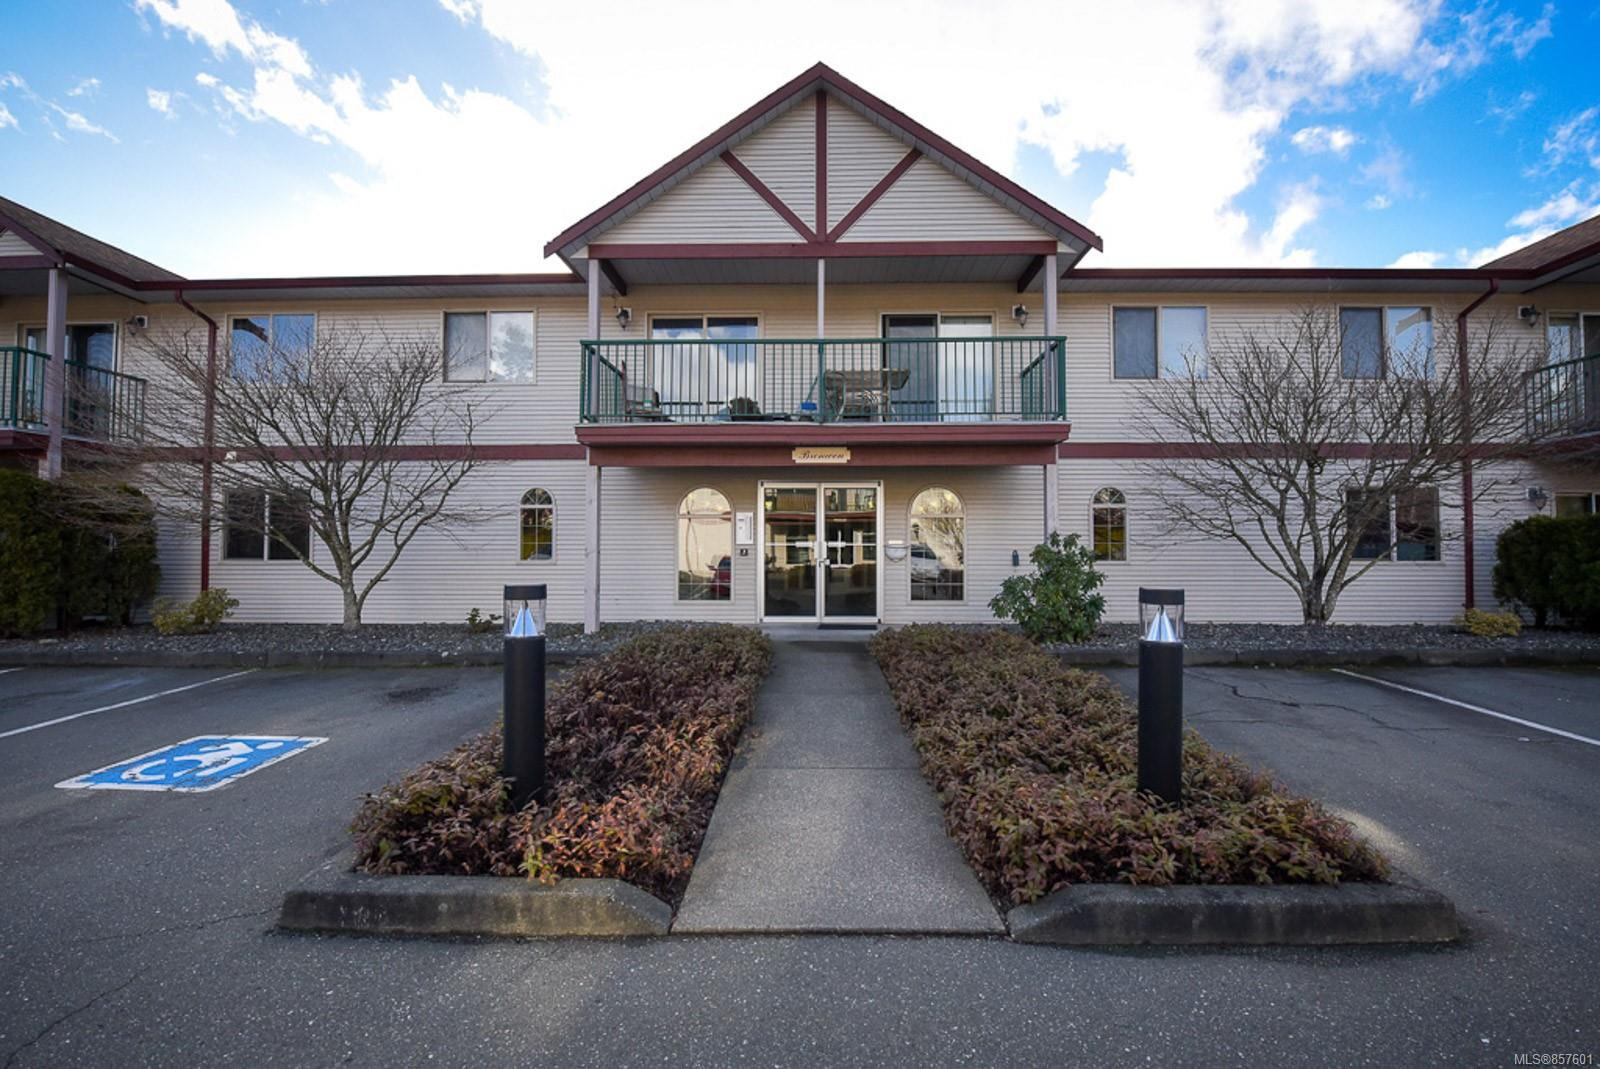 Main Photo: 213 1450 Tunner Dr in : CV Courtenay East Condo for sale (Comox Valley)  : MLS®# 857601